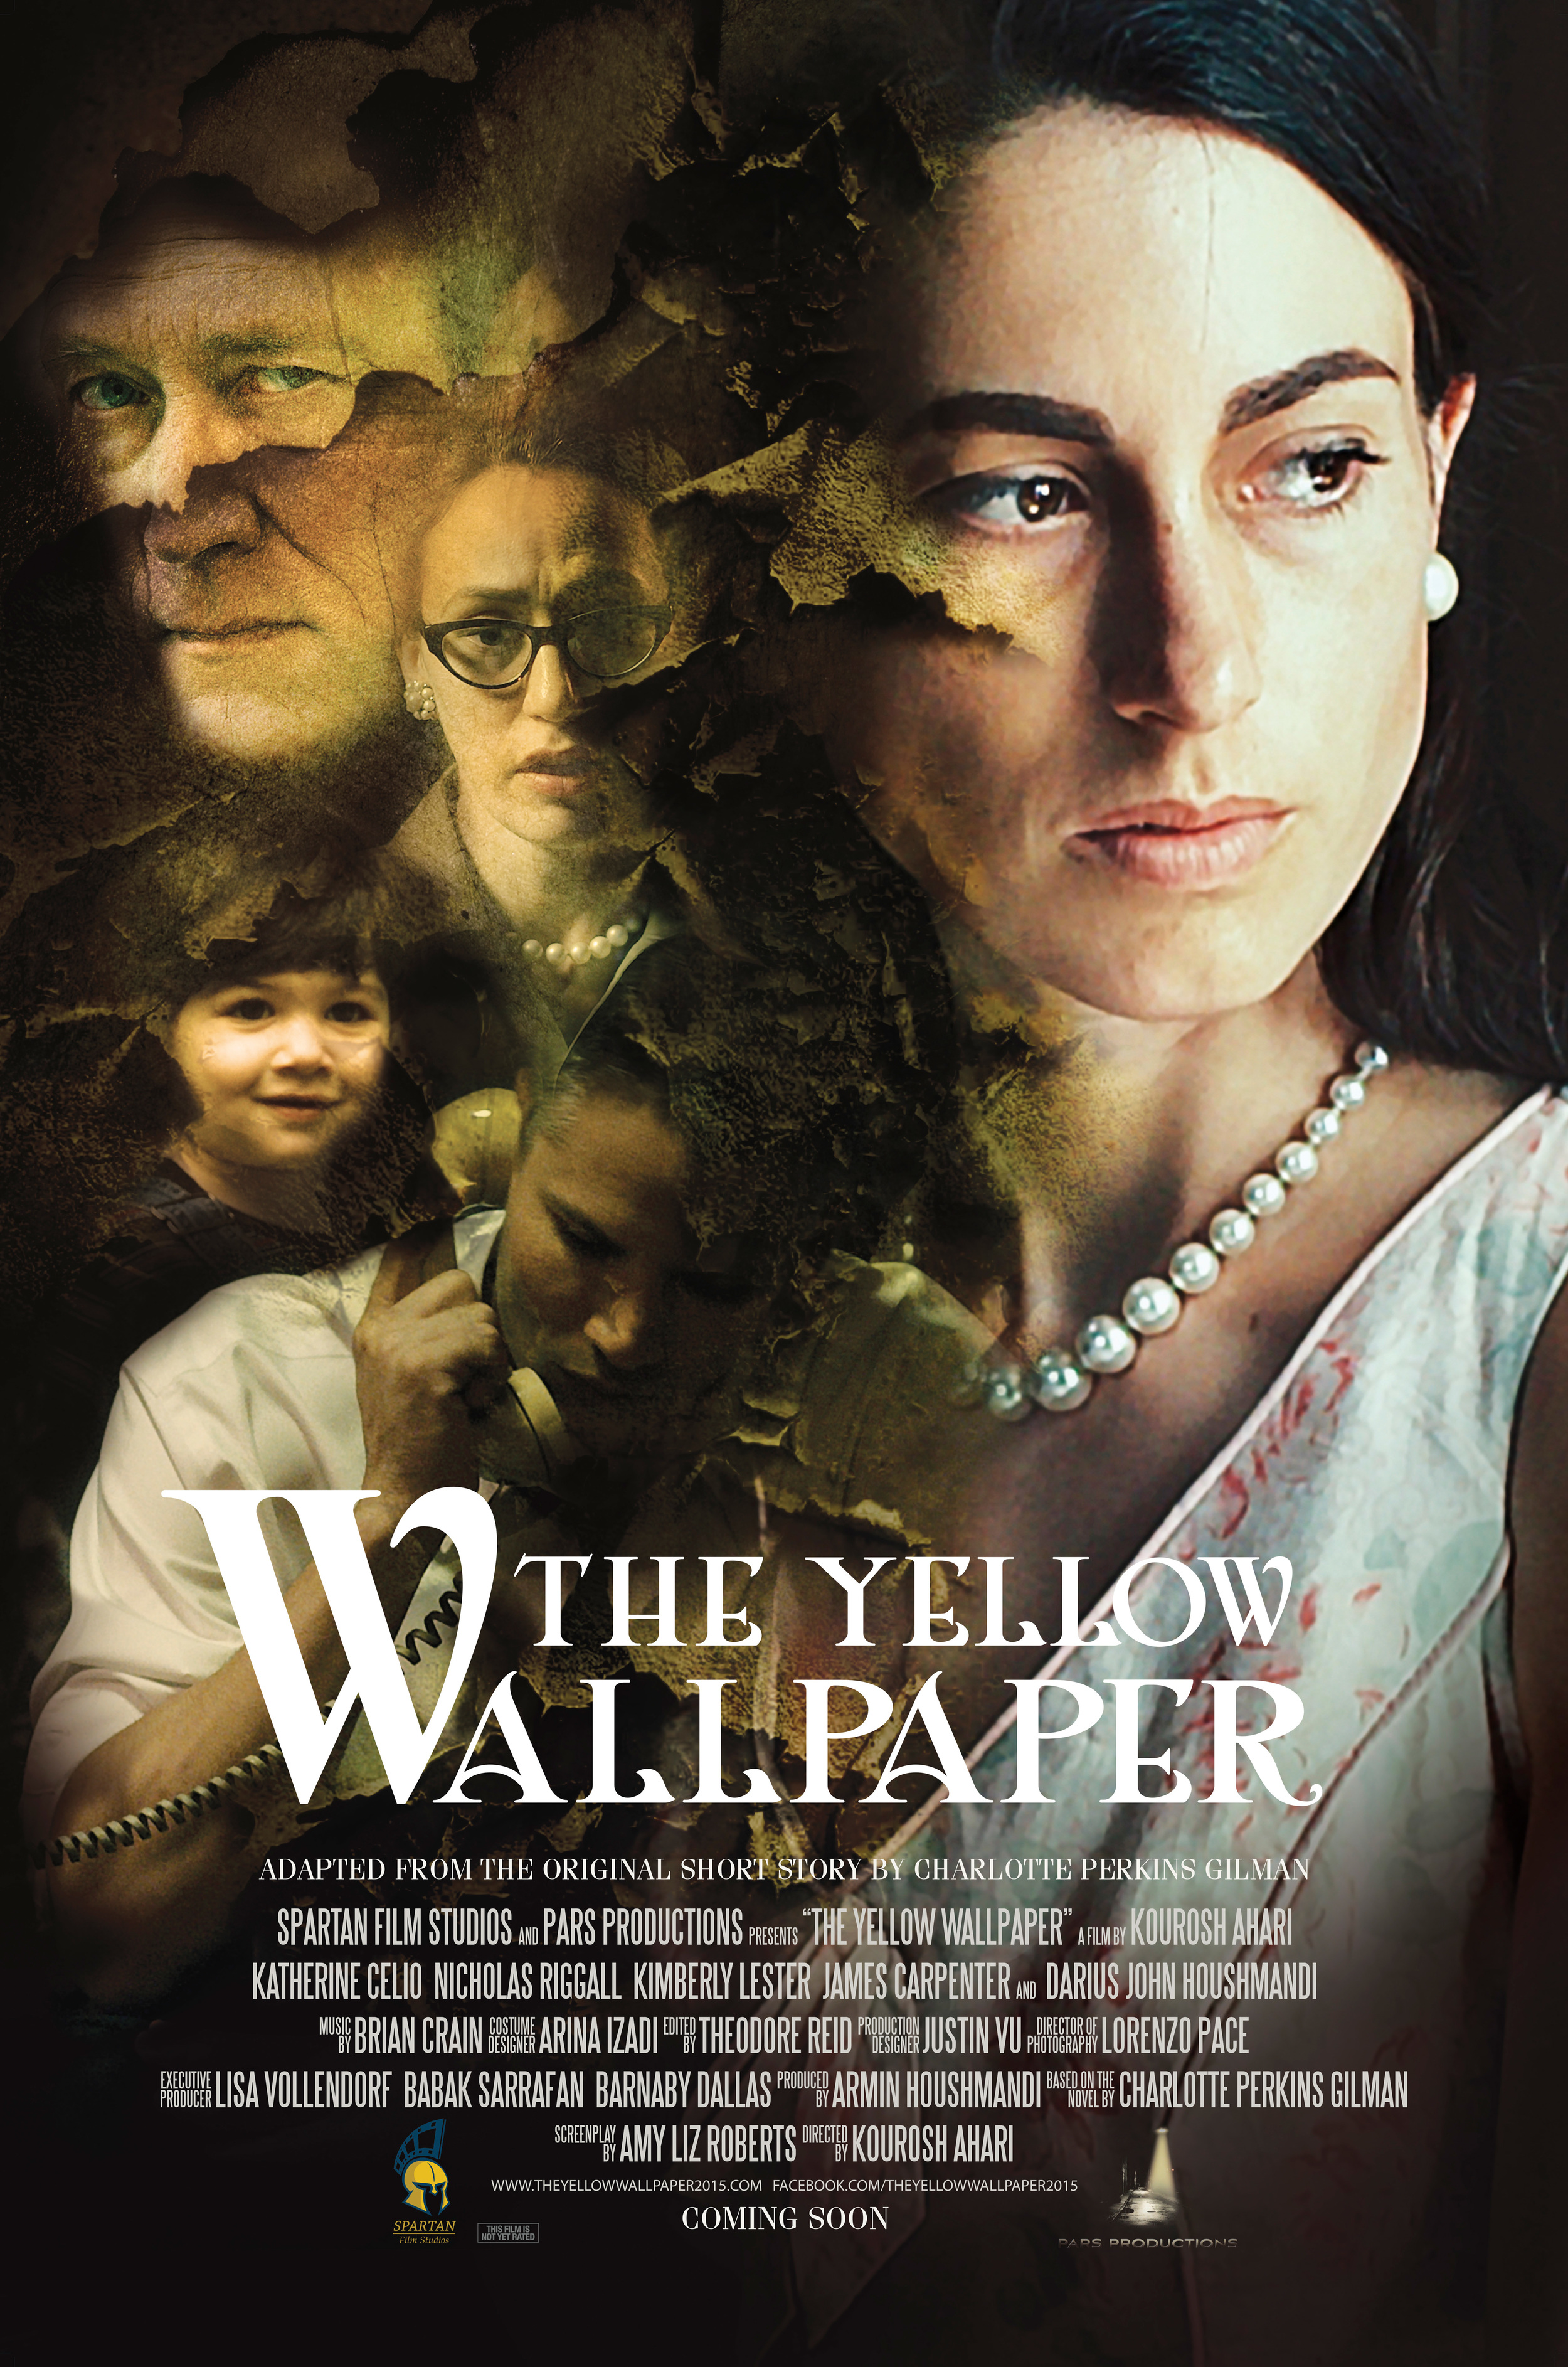 Copy of The Yellow Wallaper